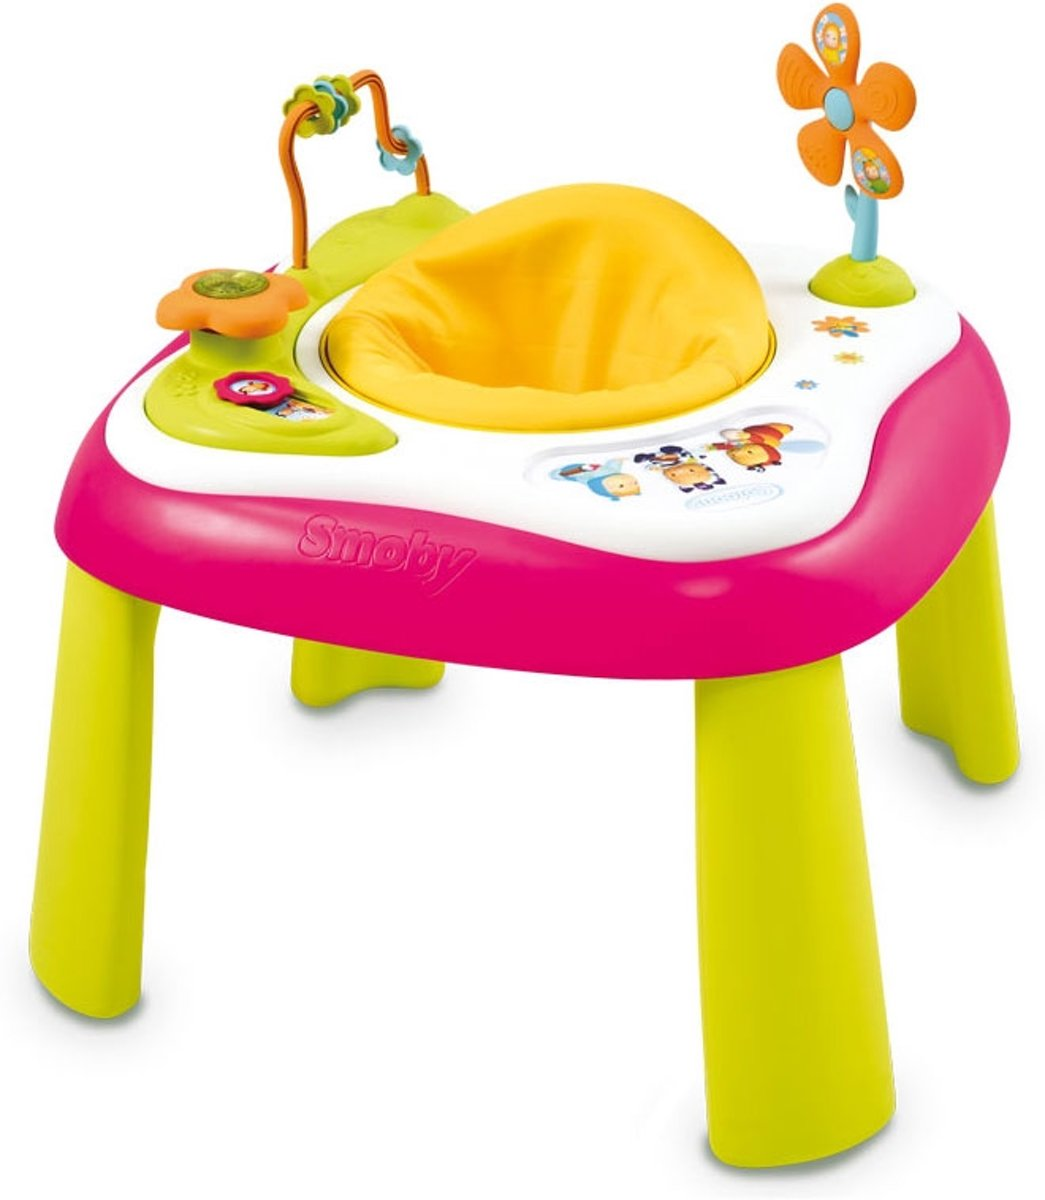 Chicco Sprekende Keuken Bol Smoby Cotoons Youpi Baby Blauw Smoby Speelgoed